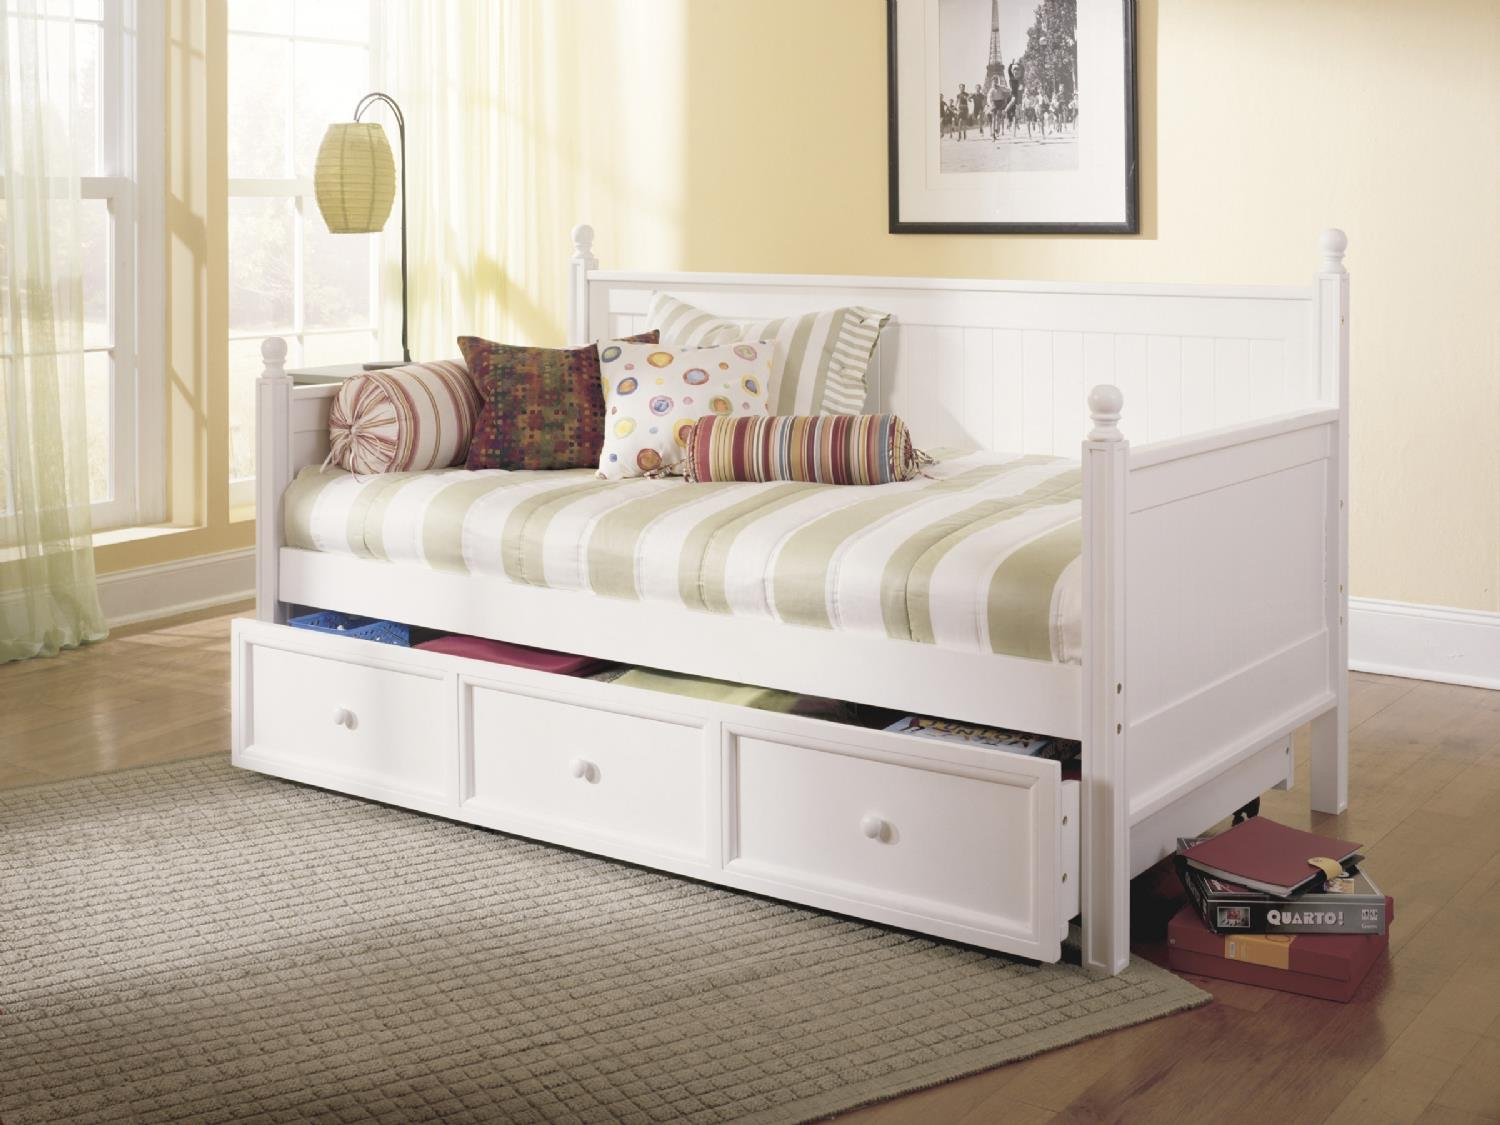 Fashion Bed Group Casey Daybed & Trundle - Item Number: D98139174+D99139175